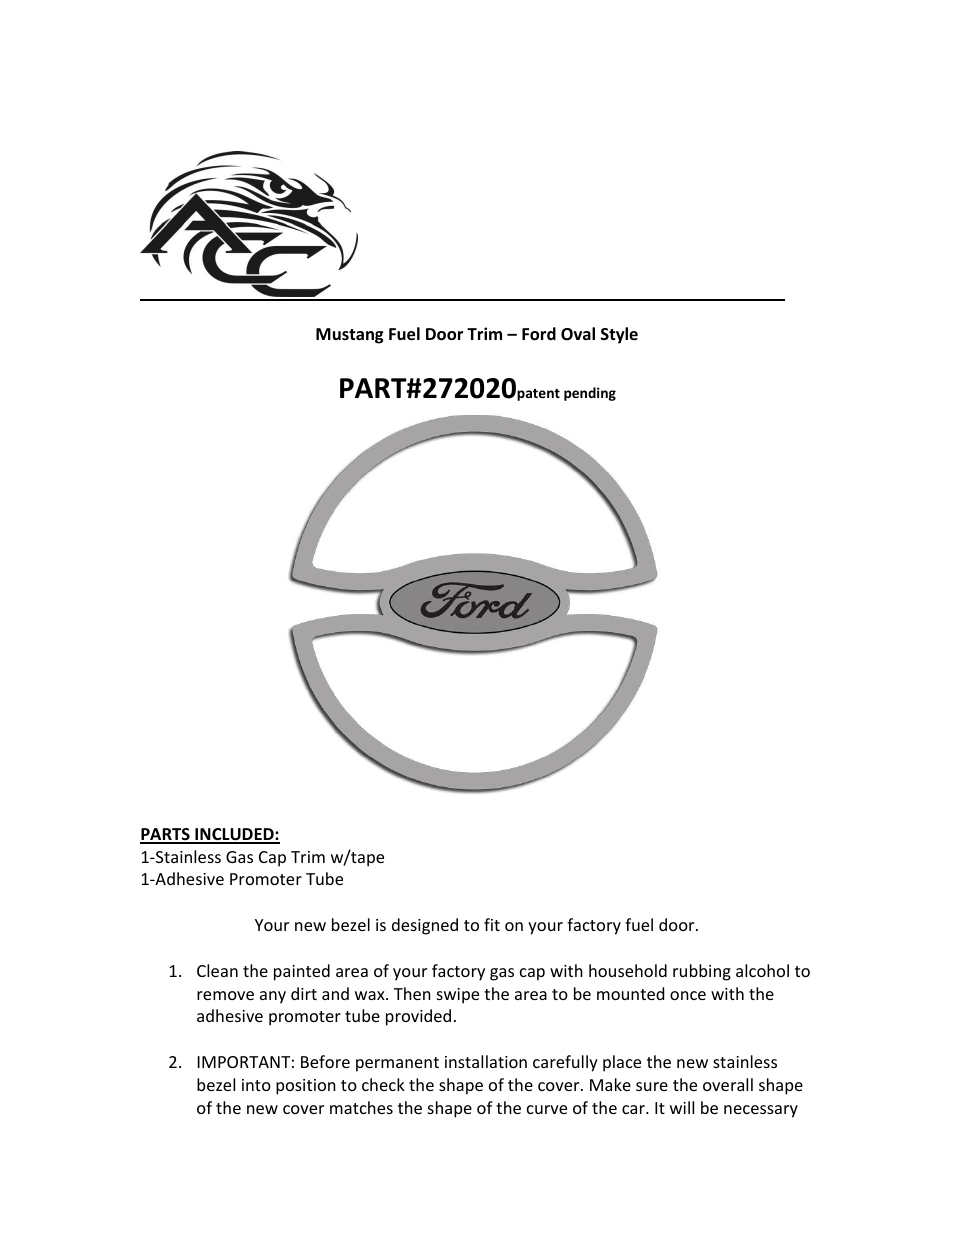 """American Car Craft Mustang Gas Cap Cover """"Ford Oval Style Polished  2011-2012"""" User Manual 